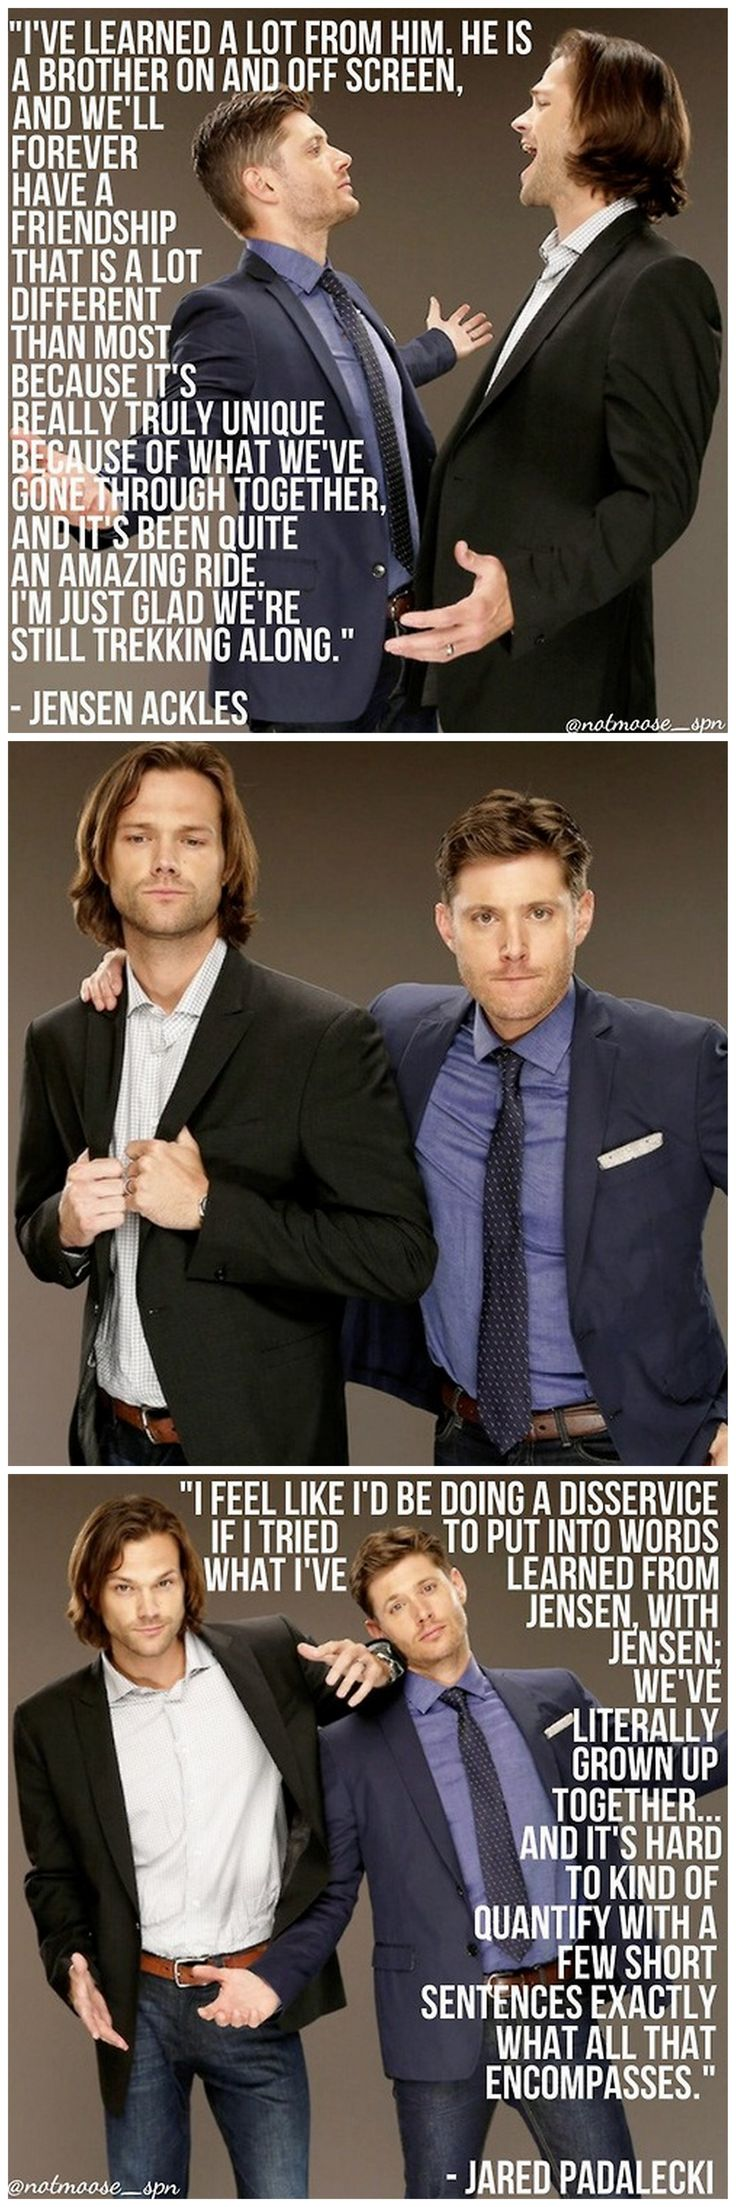 Jared padalecki quotes - Quotes From Jared And Jensen At The Tca14 This Make Me Happy And Sad At